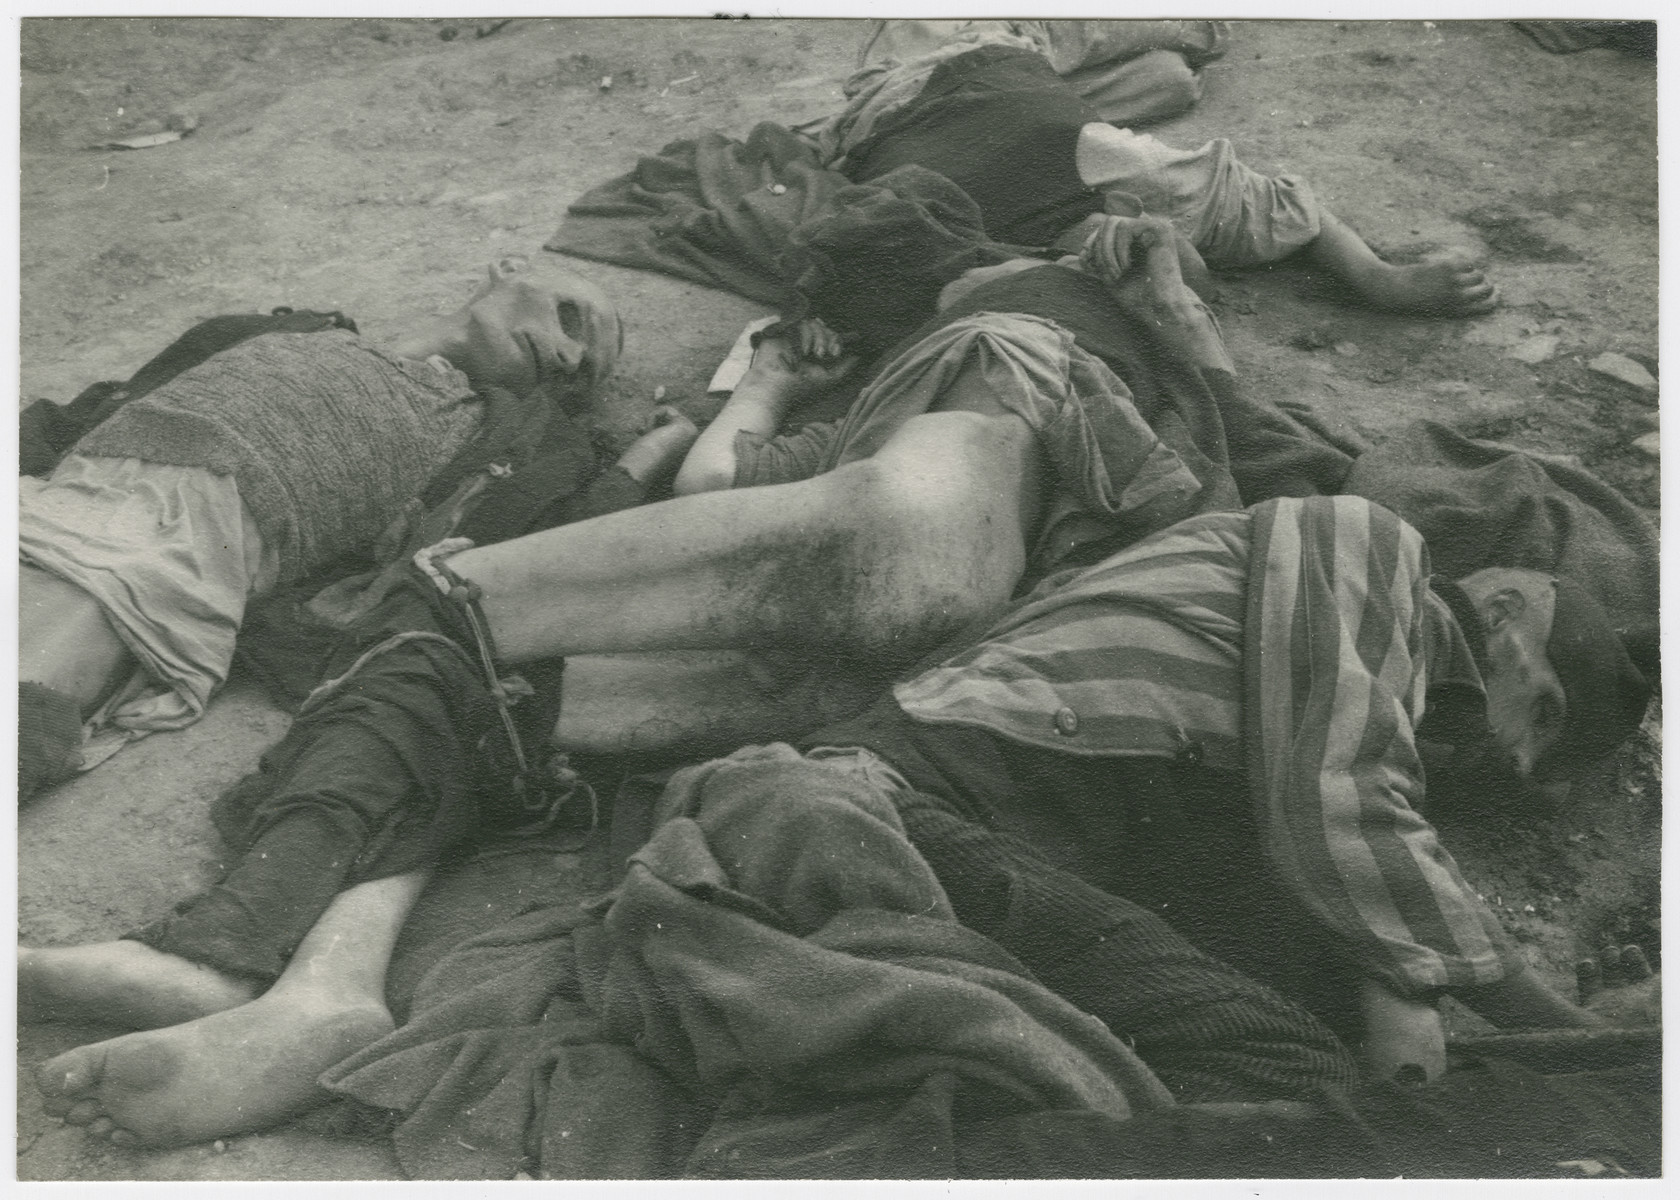 Corpses lie on the grounds of either Buchenwald or Ohrdruf concentration camp.